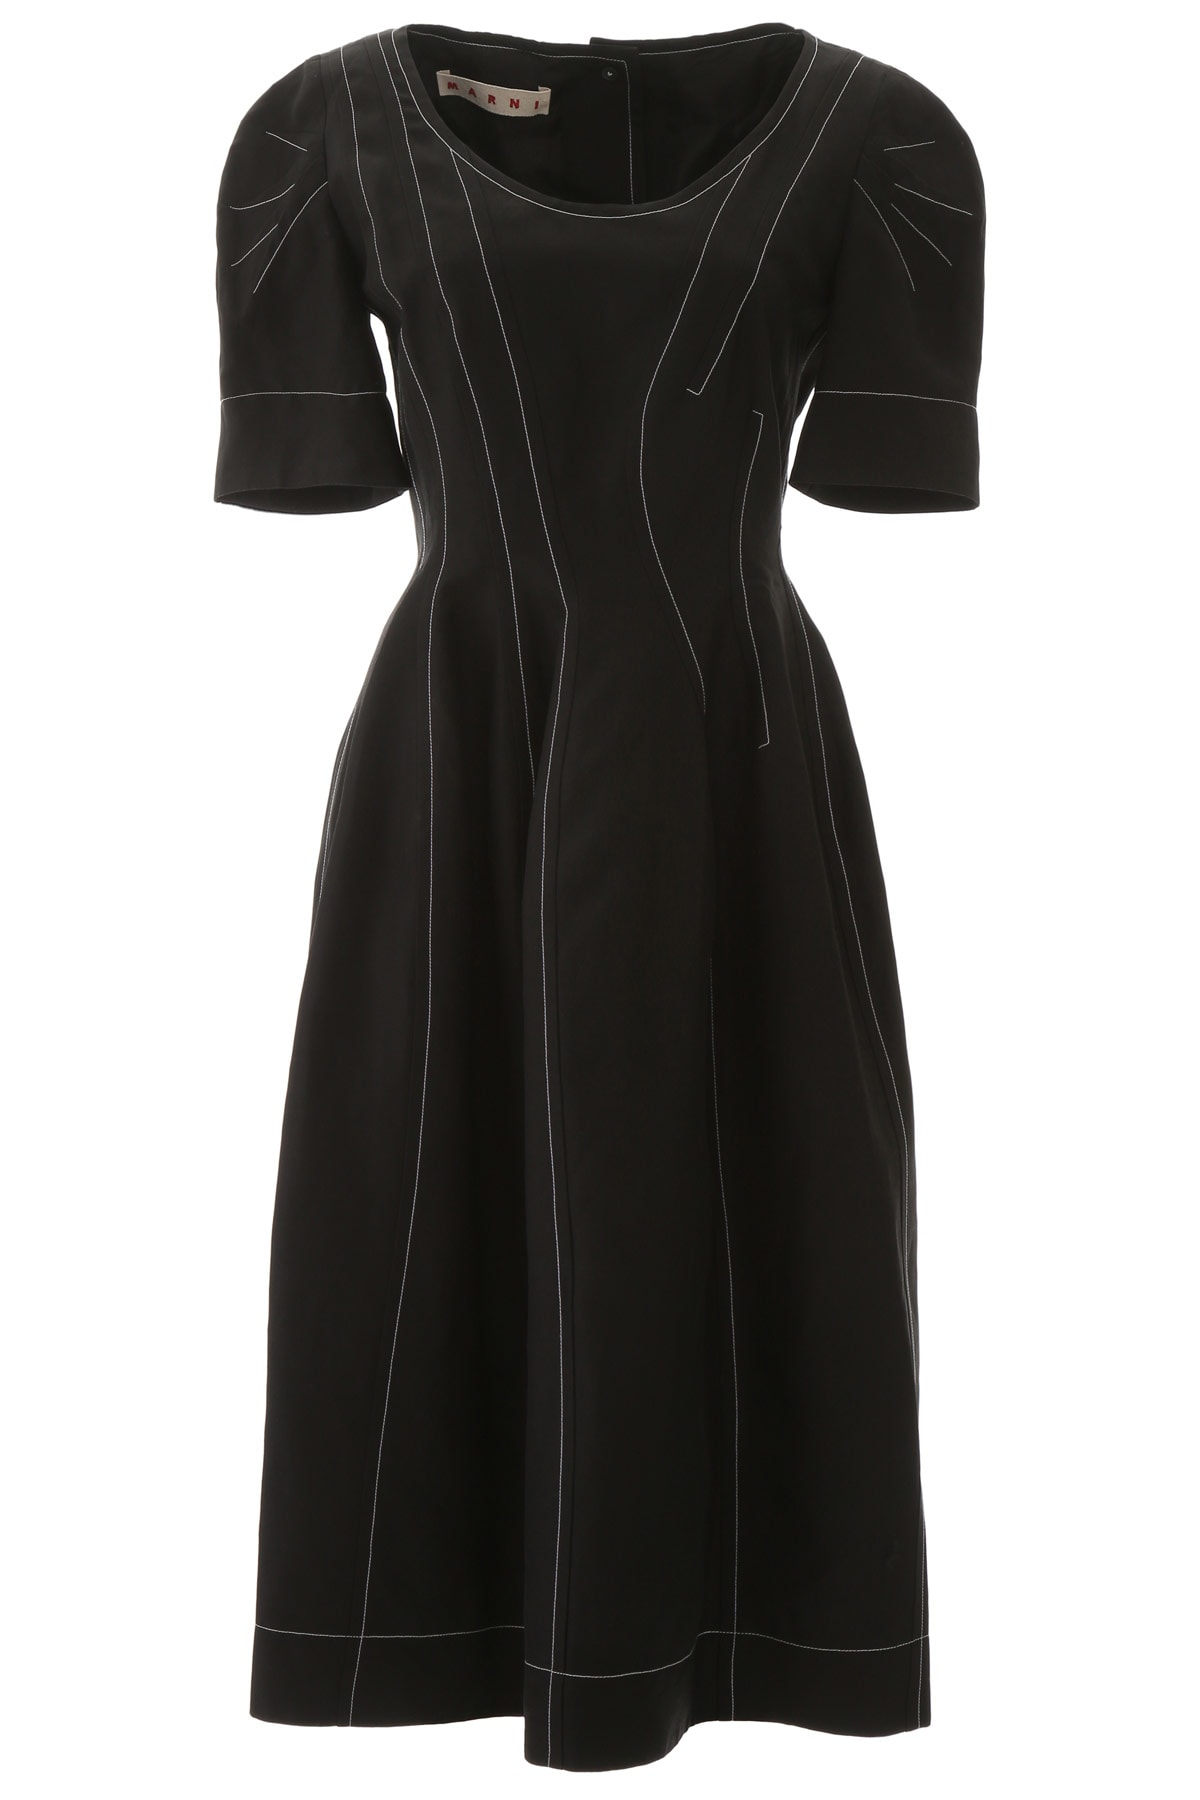 Buy Marni Dress With Stitching online, shop Marni with free shipping